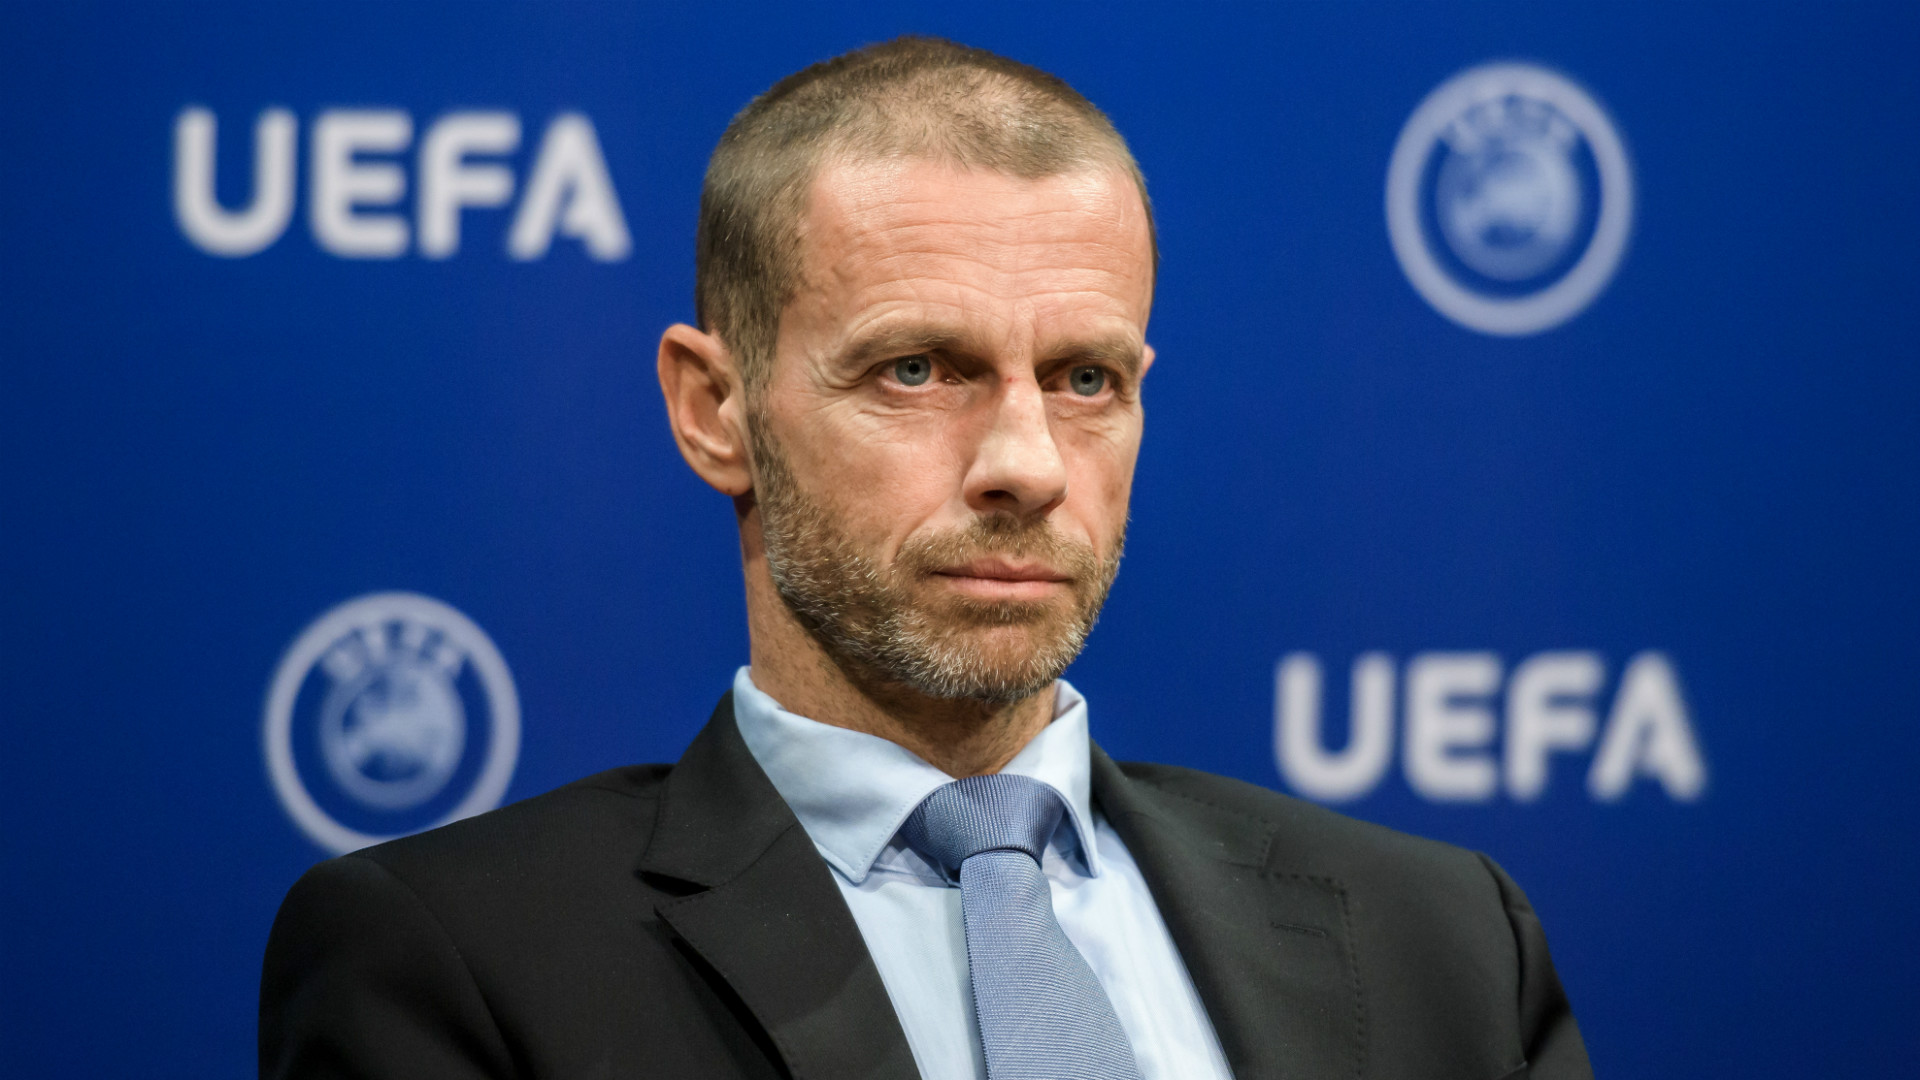 UEFA chief Ceferin threatens to ban holdout Super League clubs from Champions League